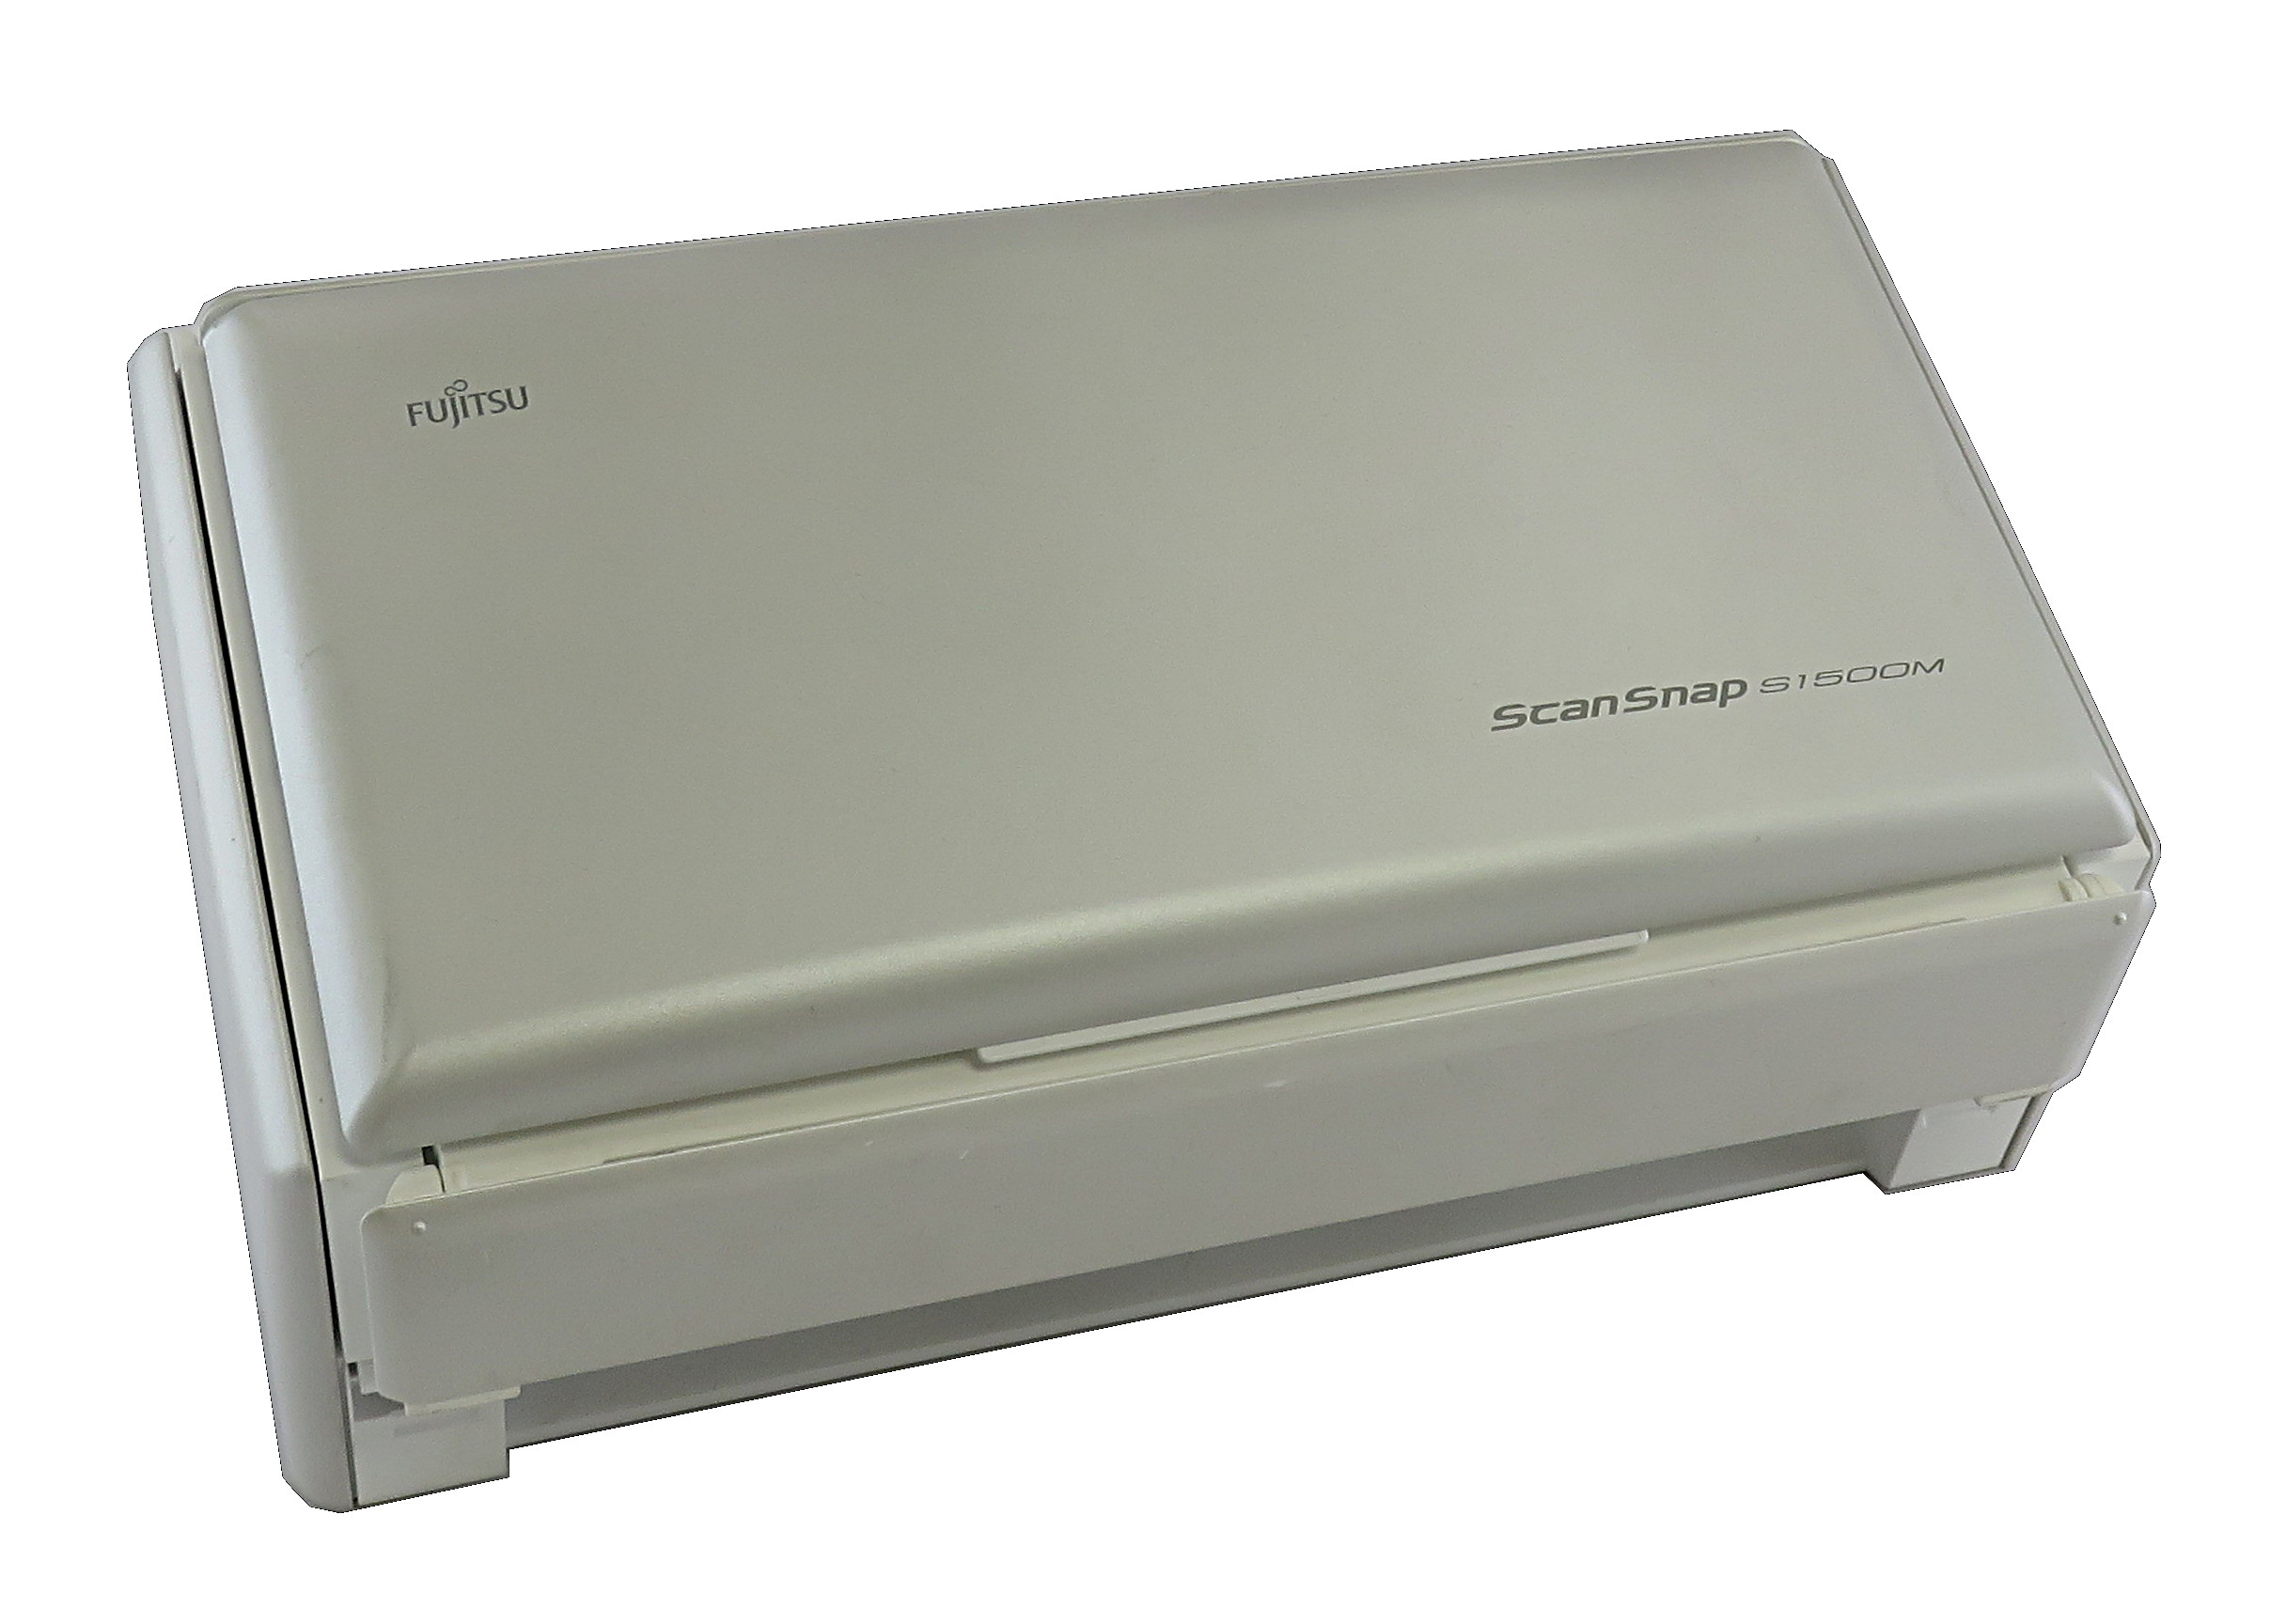 fujitsu scansnap s1500m compact duplexing colour sheetfed scanner f rh ebay co uk